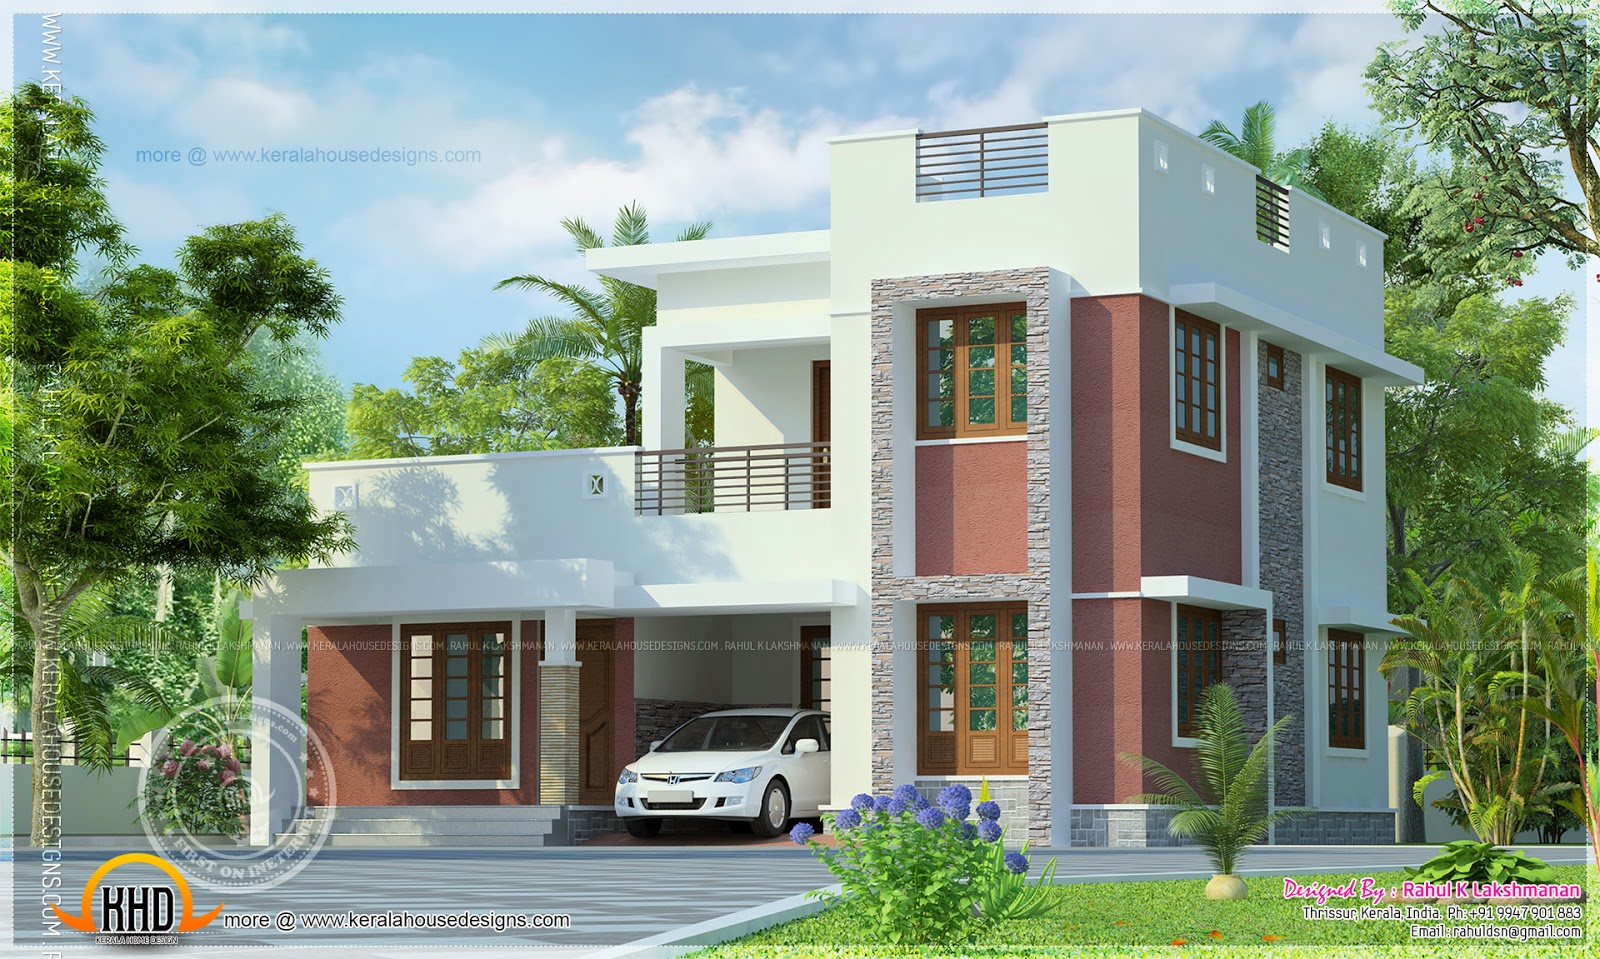 Simple flat roof house exterior kerala home design and for Simple kerala home designs